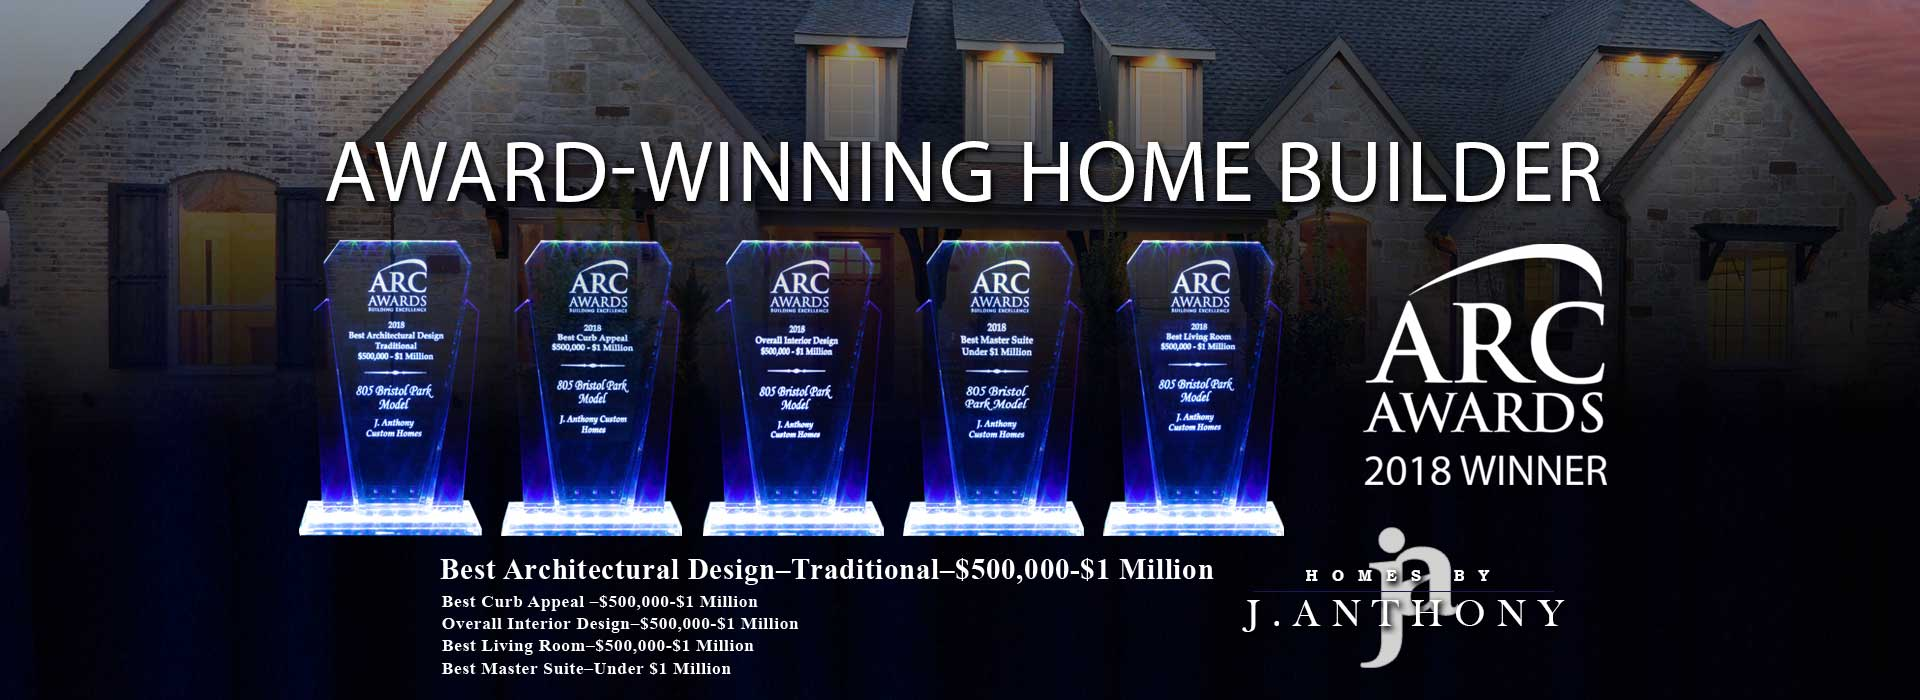 Homes By J Anthony-2018 ARC Awards Winner